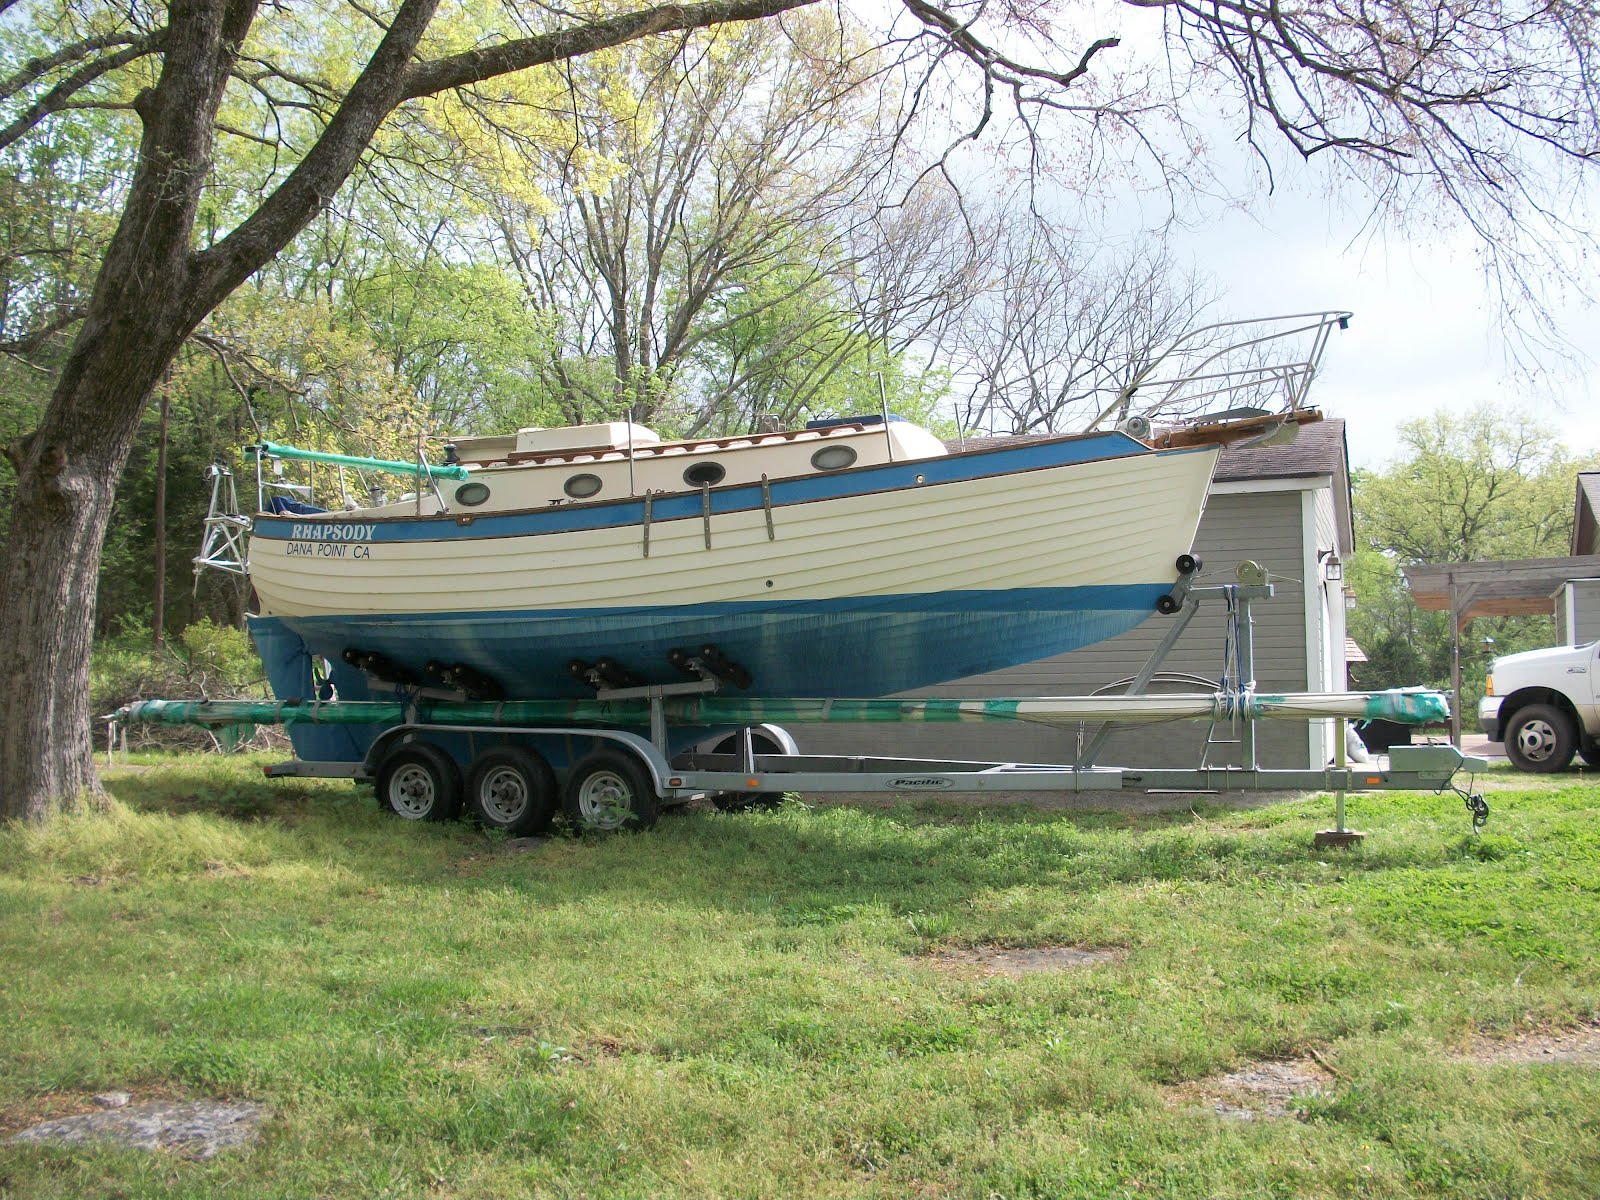 Nor'Sea Sailboats for Sale http://norsea27-rhapsody.blogspot.com/2012/04/new-boat-owner.html